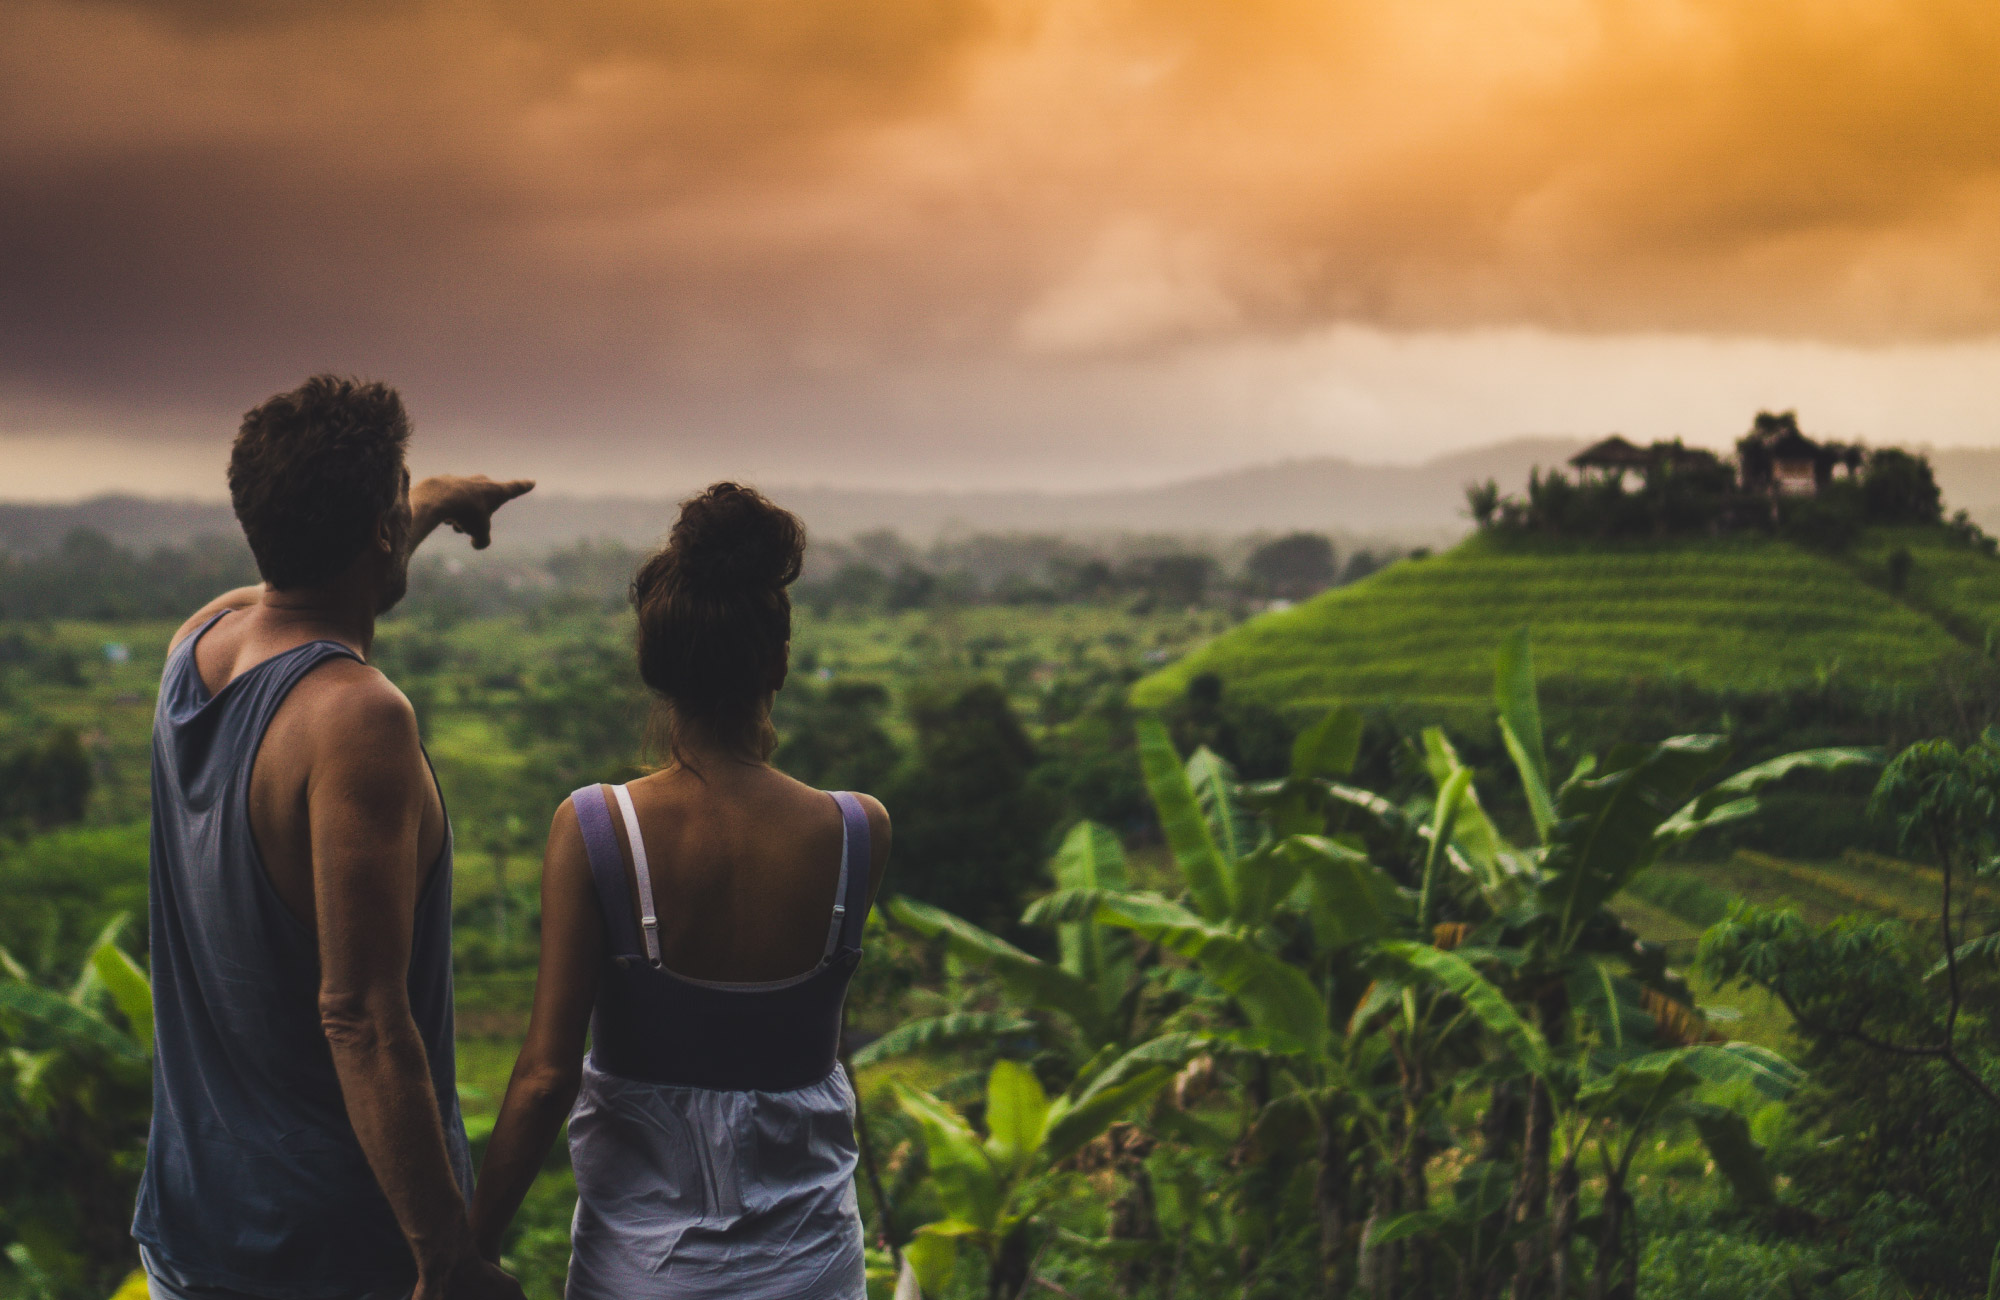 Two travellers together in Bali, Indonesia.